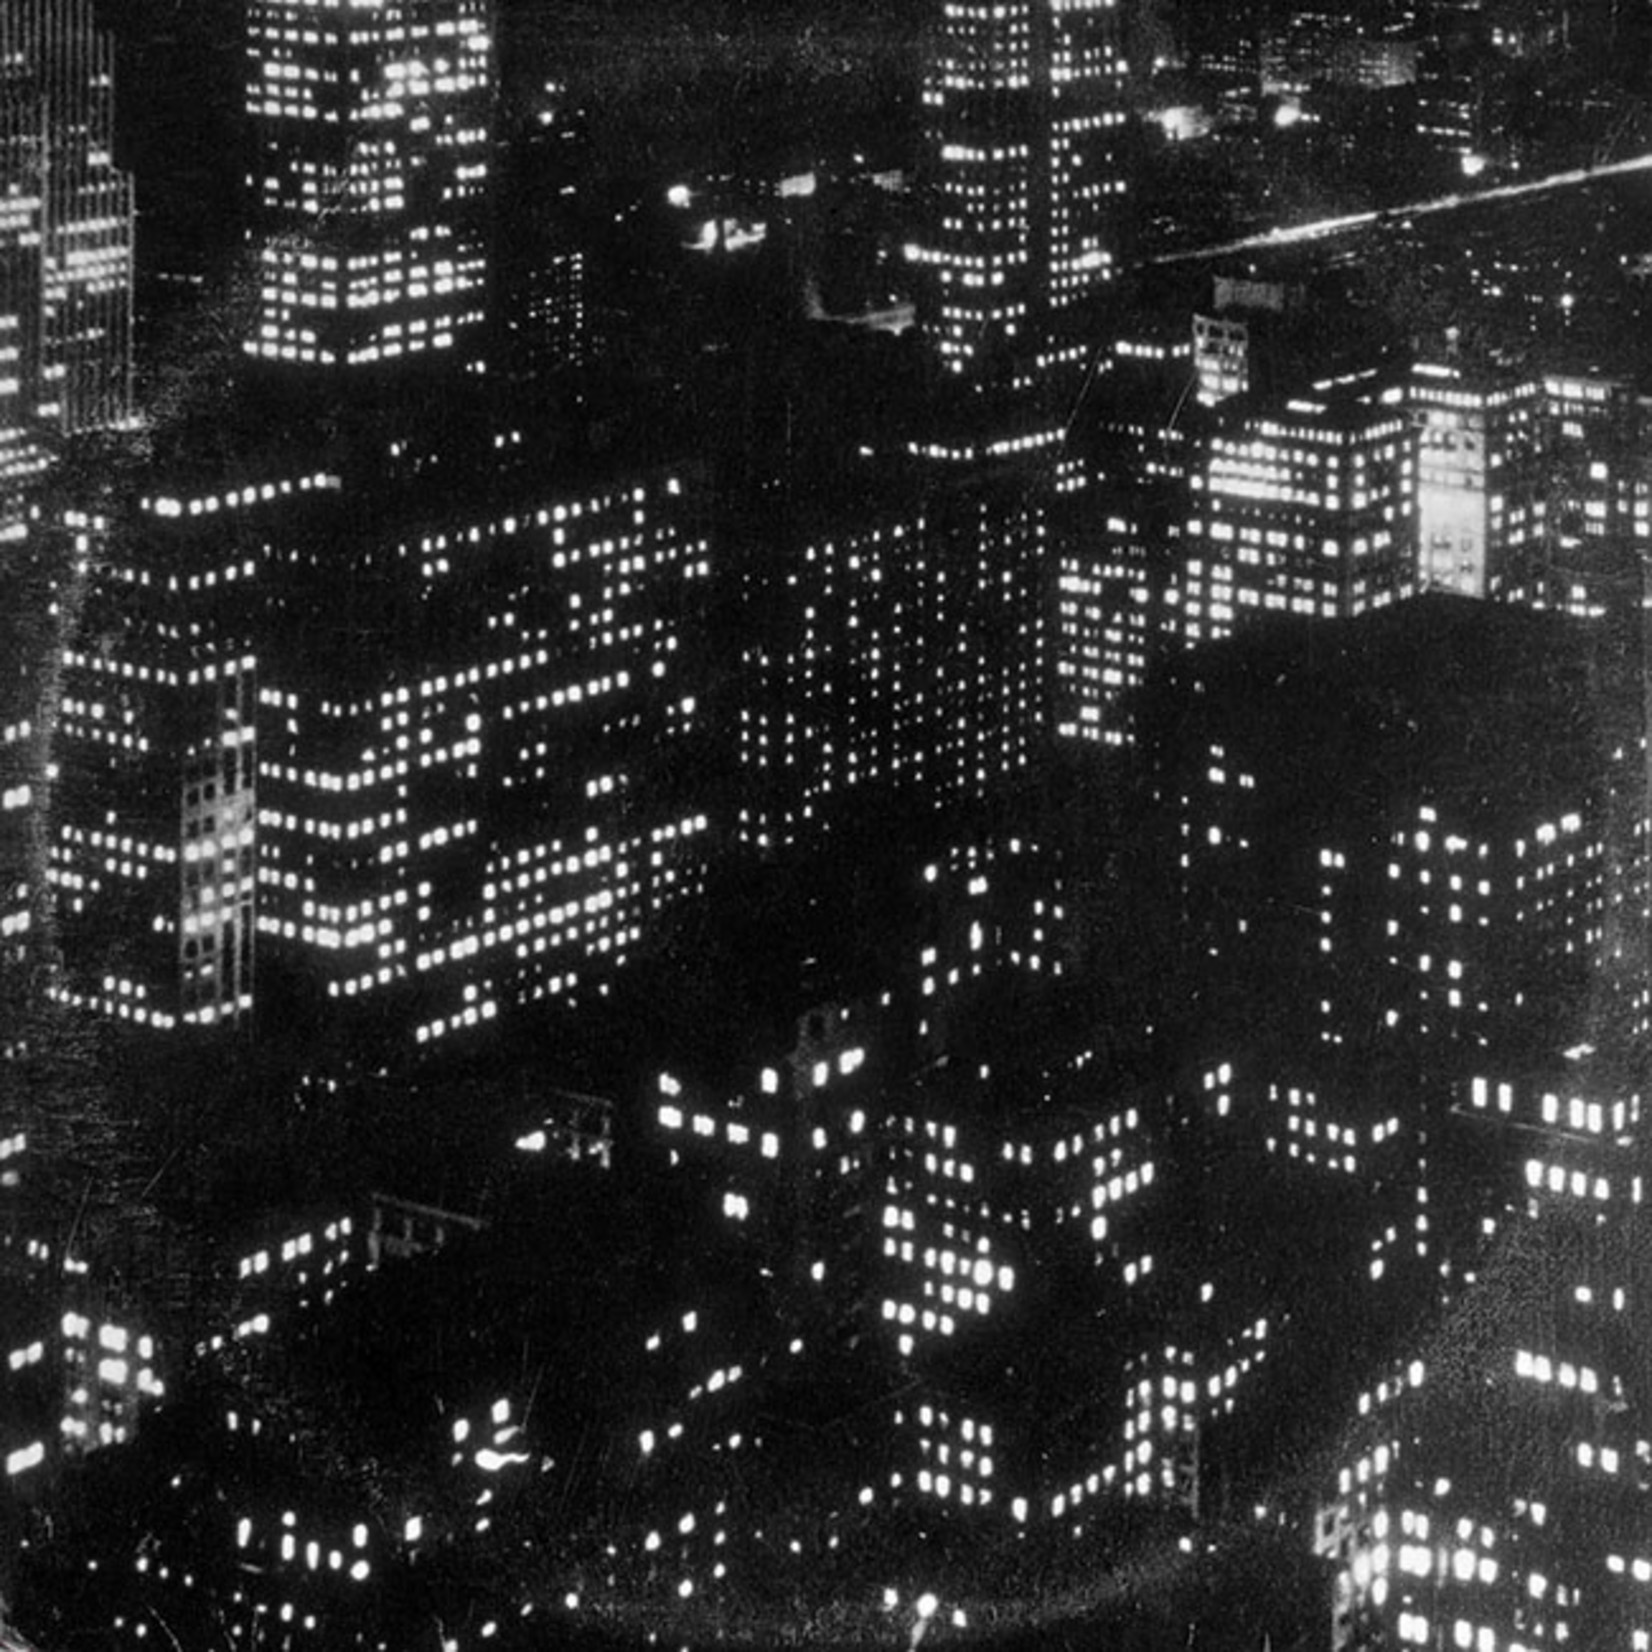 [New] Timber Timbre: Sincerely, Future Pollution